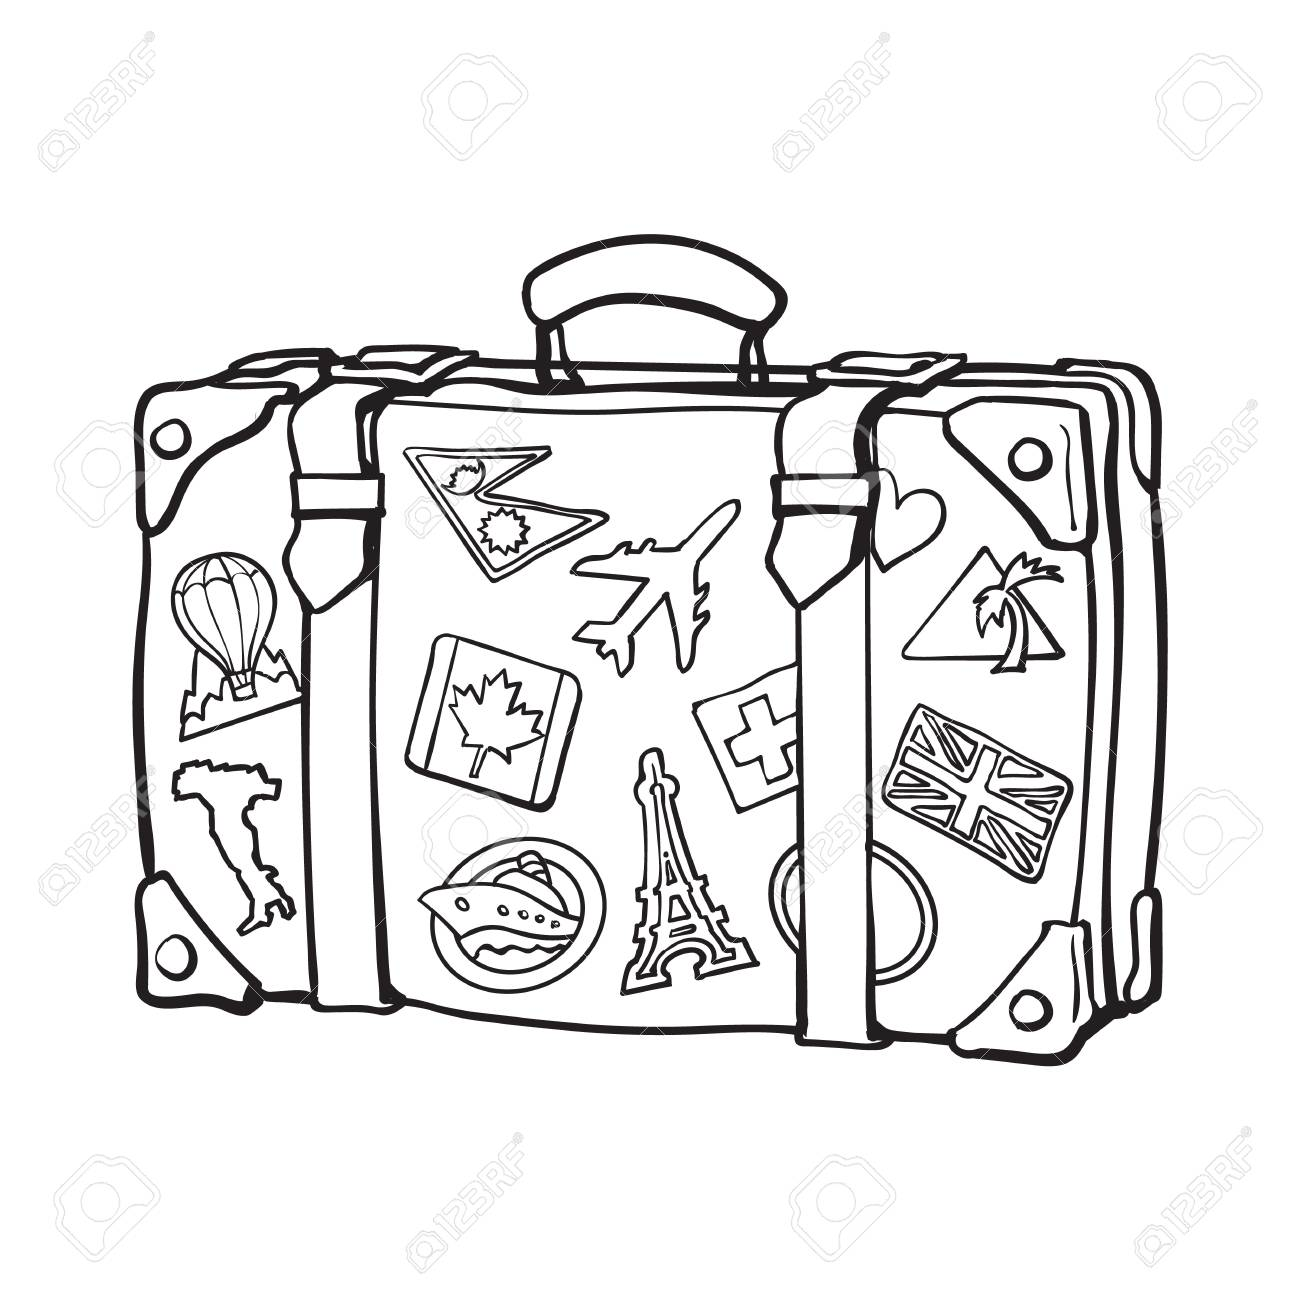 Suitcase Clipart Black And White.